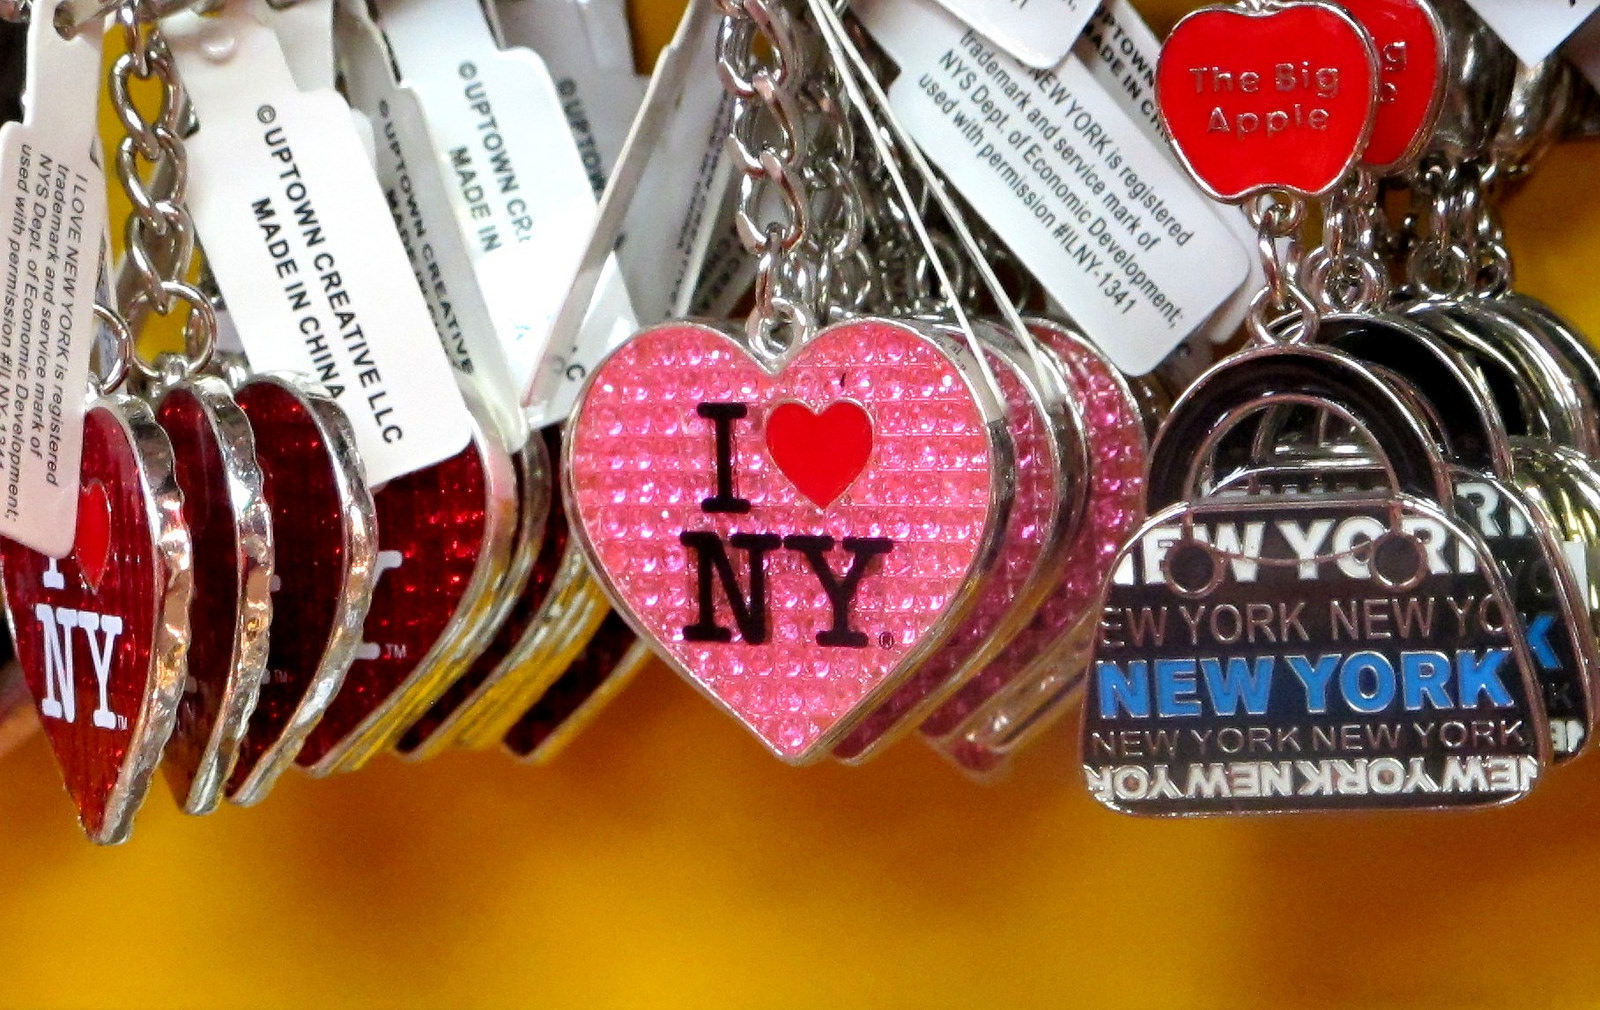 NYC souvenirs | Photo by frankieleon. https://www.flickr.com/photos/armydre2008/15786240793/in/photolist-q3YBpp-qa5qGW-9g61hG-dUe6Vo-dbHE4H-dTmnSq-r7p27V-wfXHP-acKXSa-6VKbsU-6VF7up-uJKSeF-6VKbbm-6VF7Gn-7LDnMS-qoKnBD-5wC3VJ-7LzoAF-LubtE-dSQBt2-6VK2Bm-61UPjG-cwtvgj-dSQ7Sa-cyNbWw-2nEkS-qfSYSq-acNNQE-7iCWZ4-tGPXXf-6Wzo2q-dPDZbq-nyuQzG-8QycoG-bQzYac-nx6SYg-aE5c8p-5esG8V-ejQv8w-bBFhgf-bBFhSE-az7jyE-bQzXDk-hMBAVC-bQzXTz-bhvWpF-oQmvCm-4zuXB9-acKYKV-9fHKYk